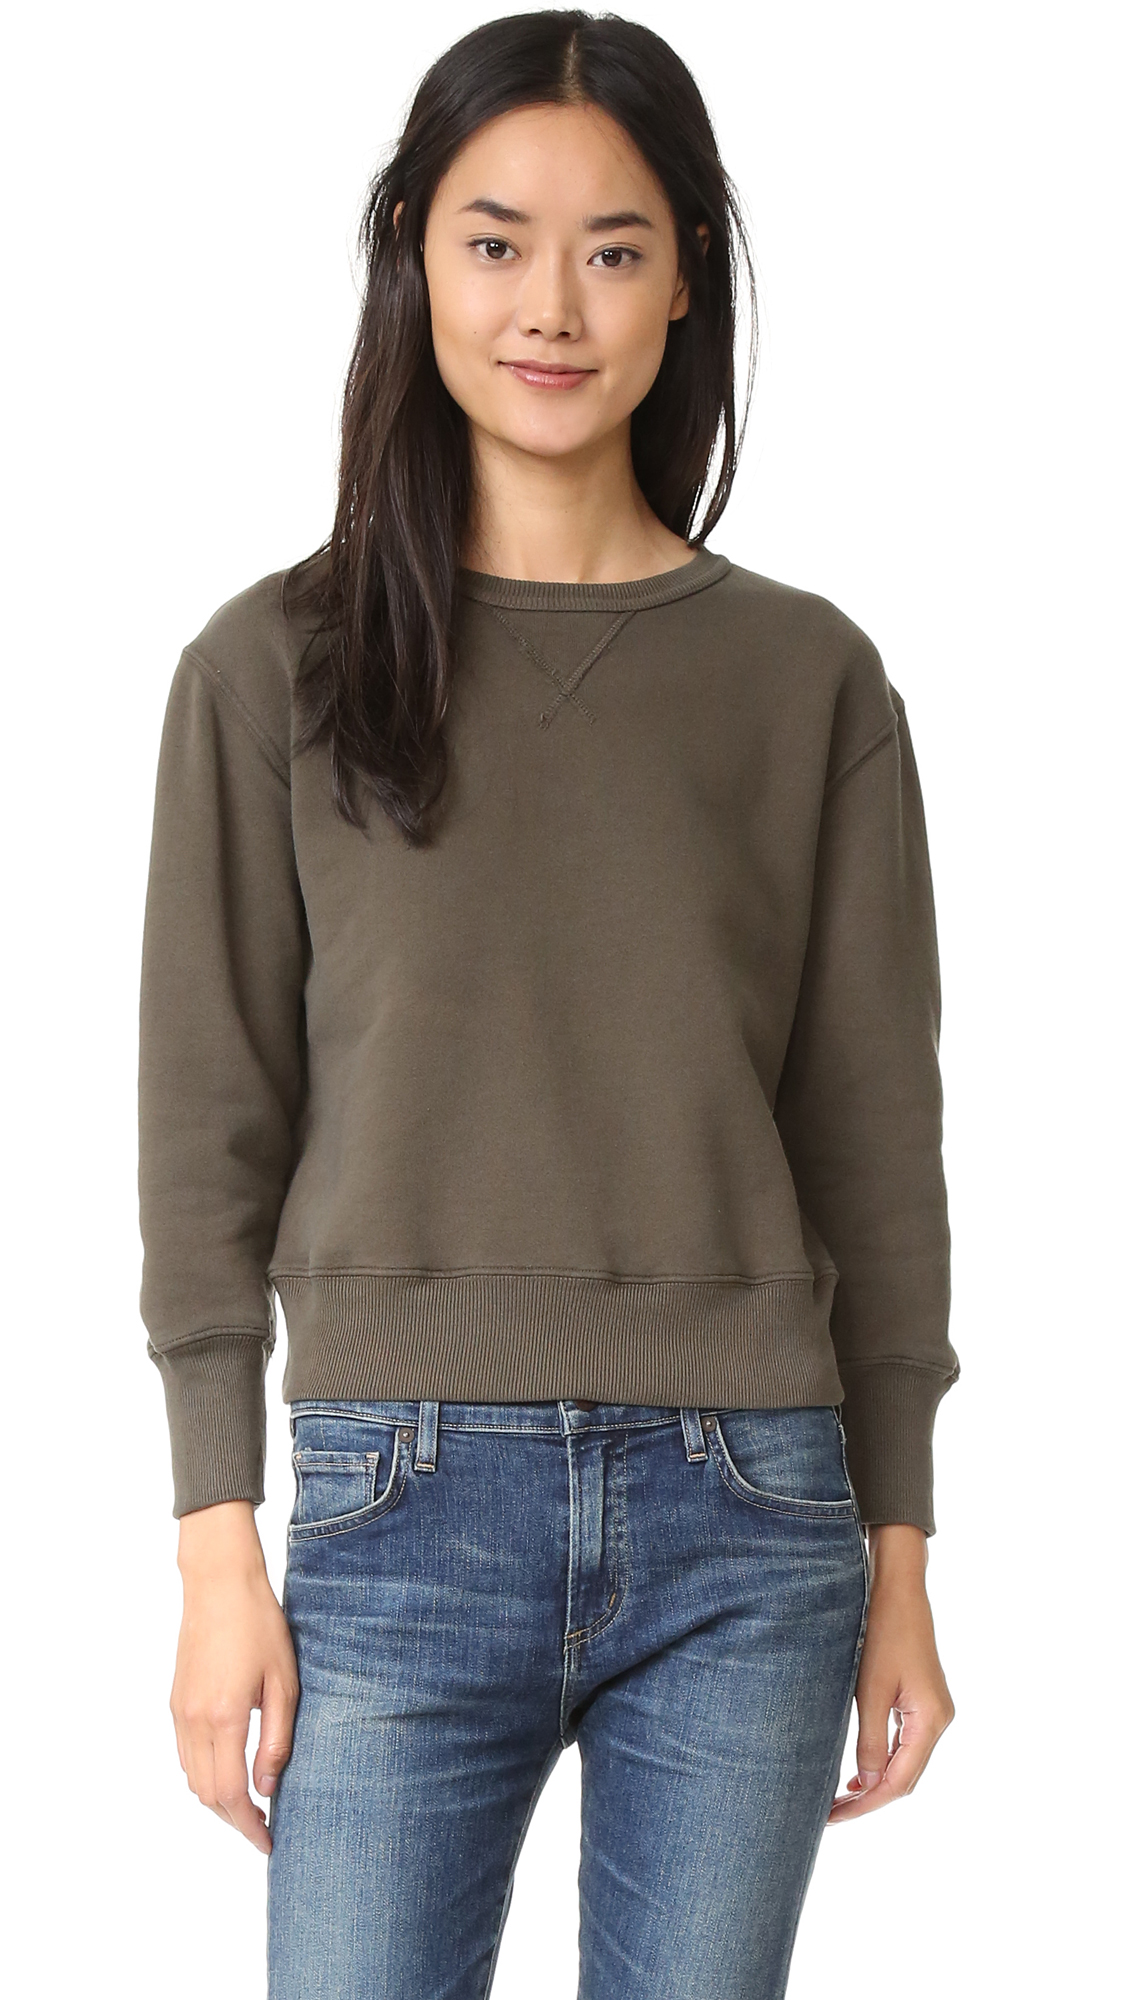 Citizens Of Humanity Camyrn Sweatshirt - Canteen at Shopbop